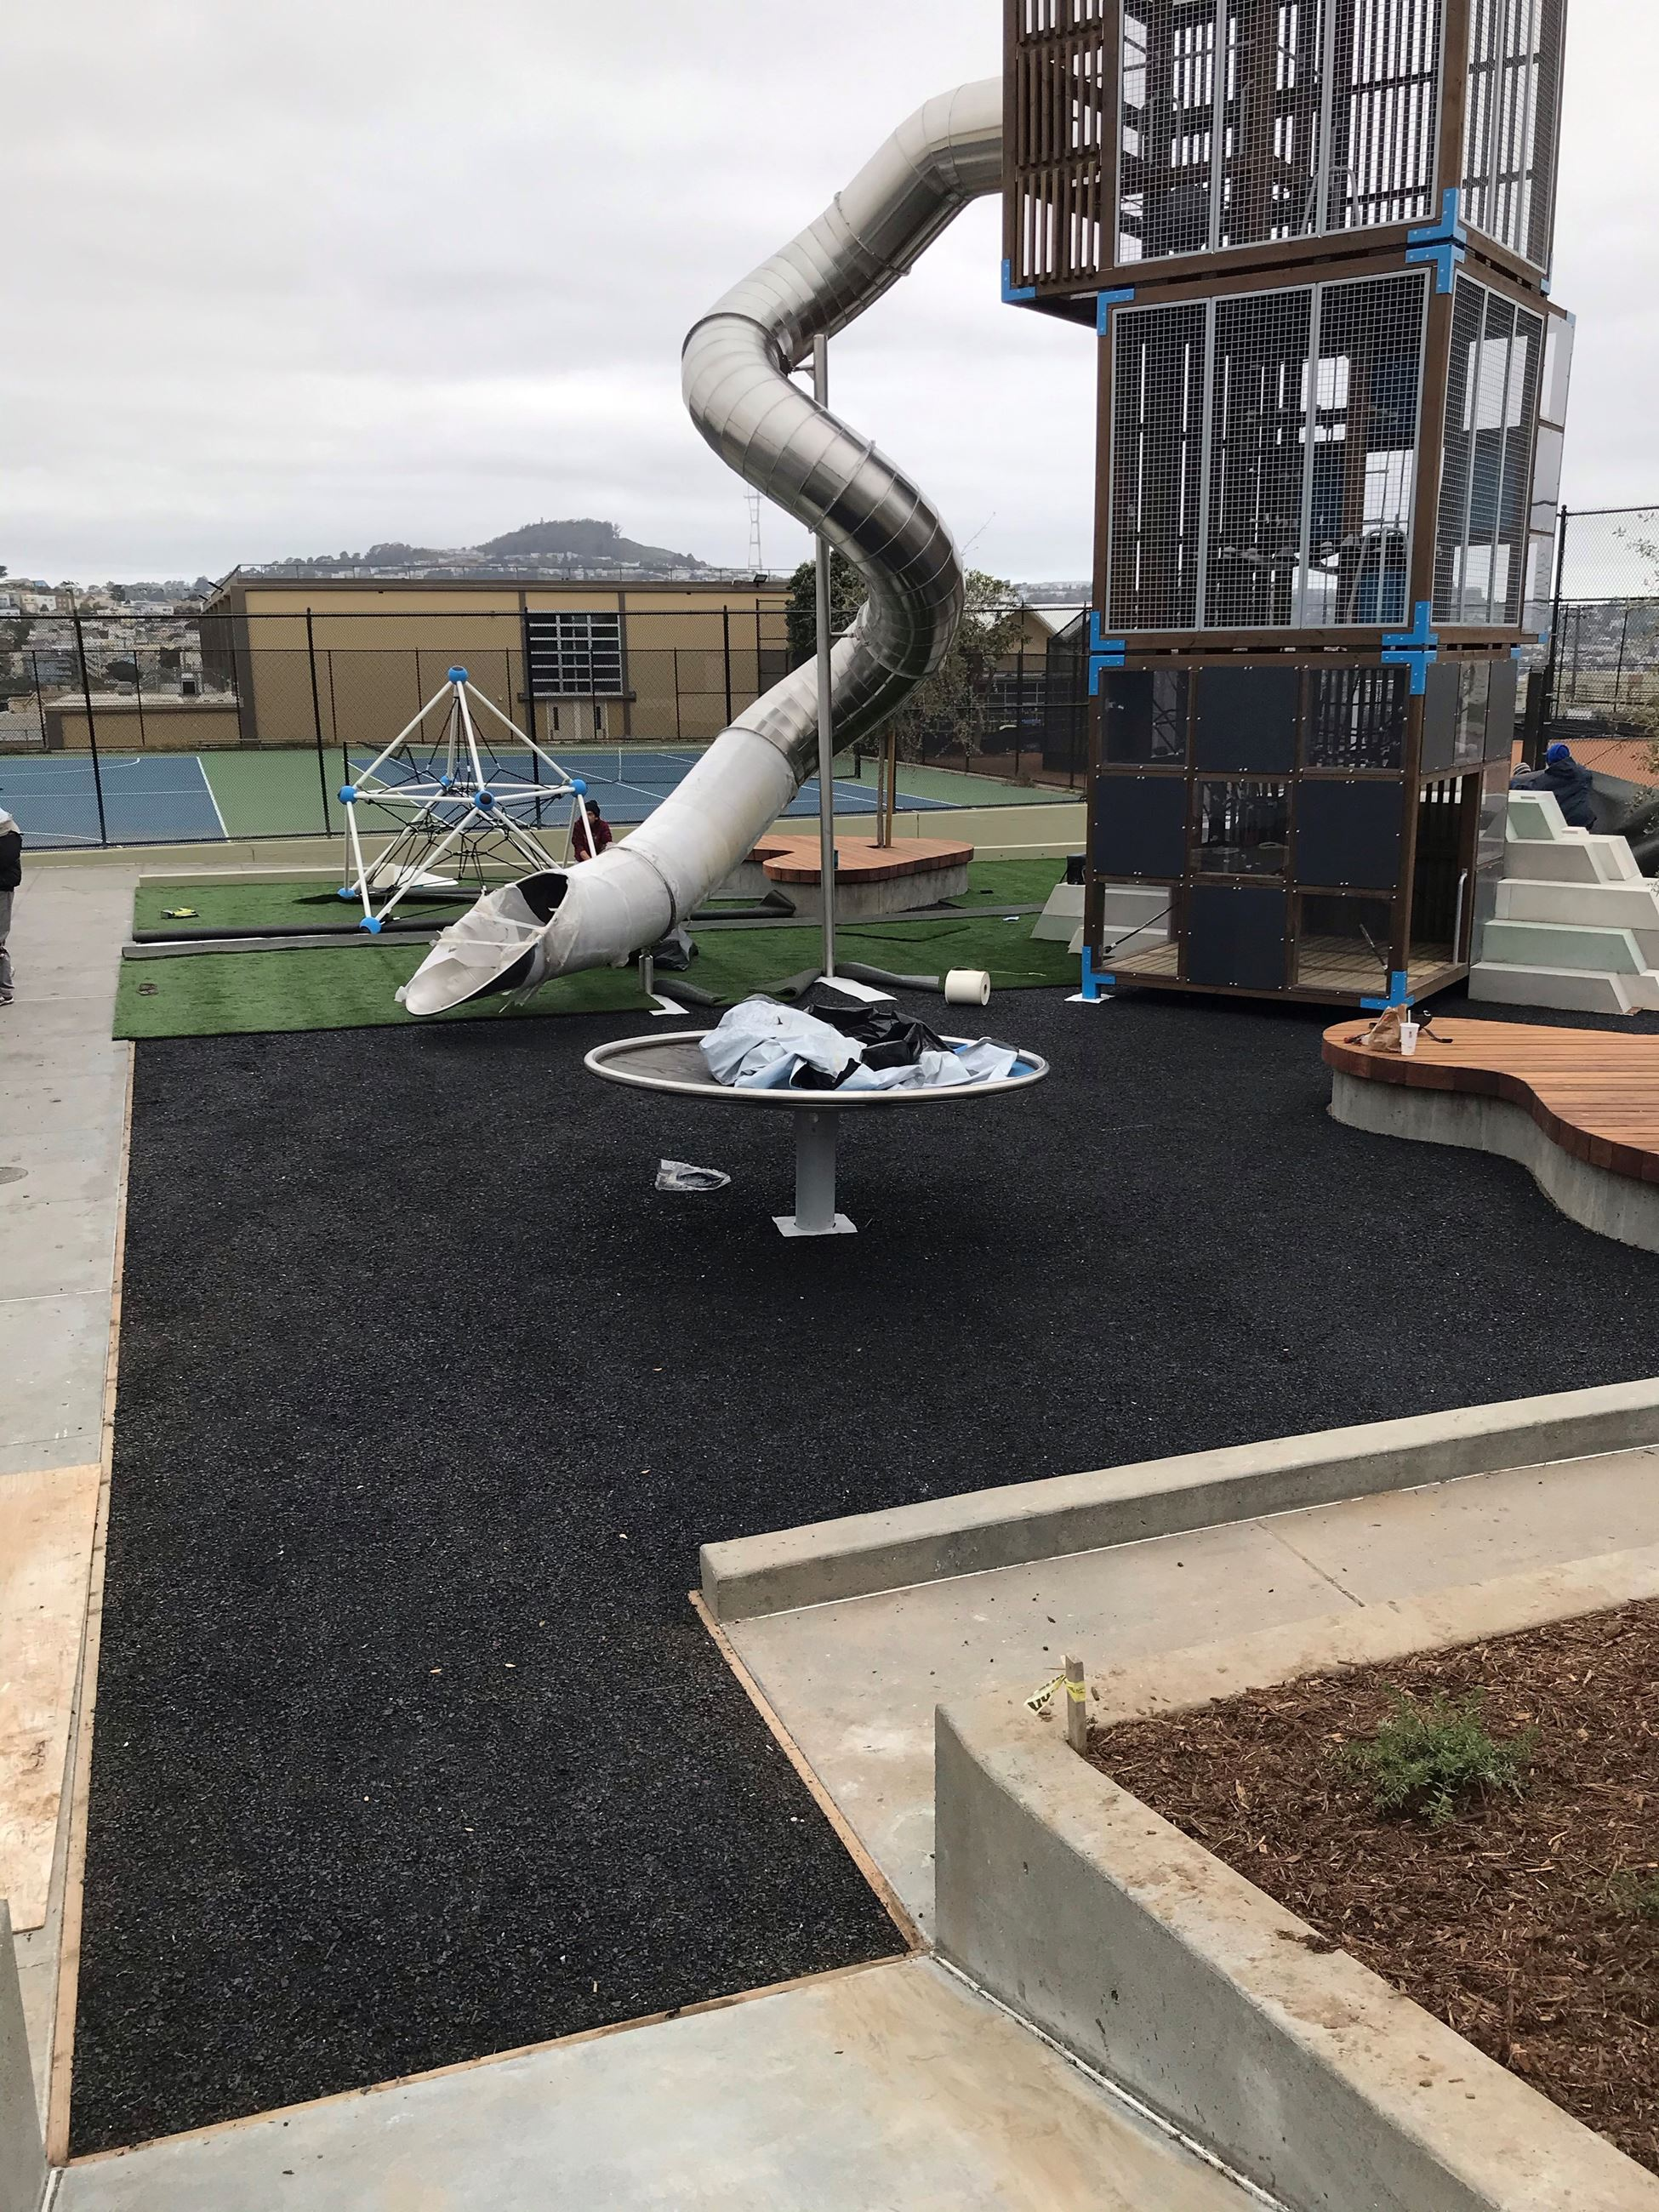 The image shows the newly poorede black rubber safety surfacing as well as the newly installed play